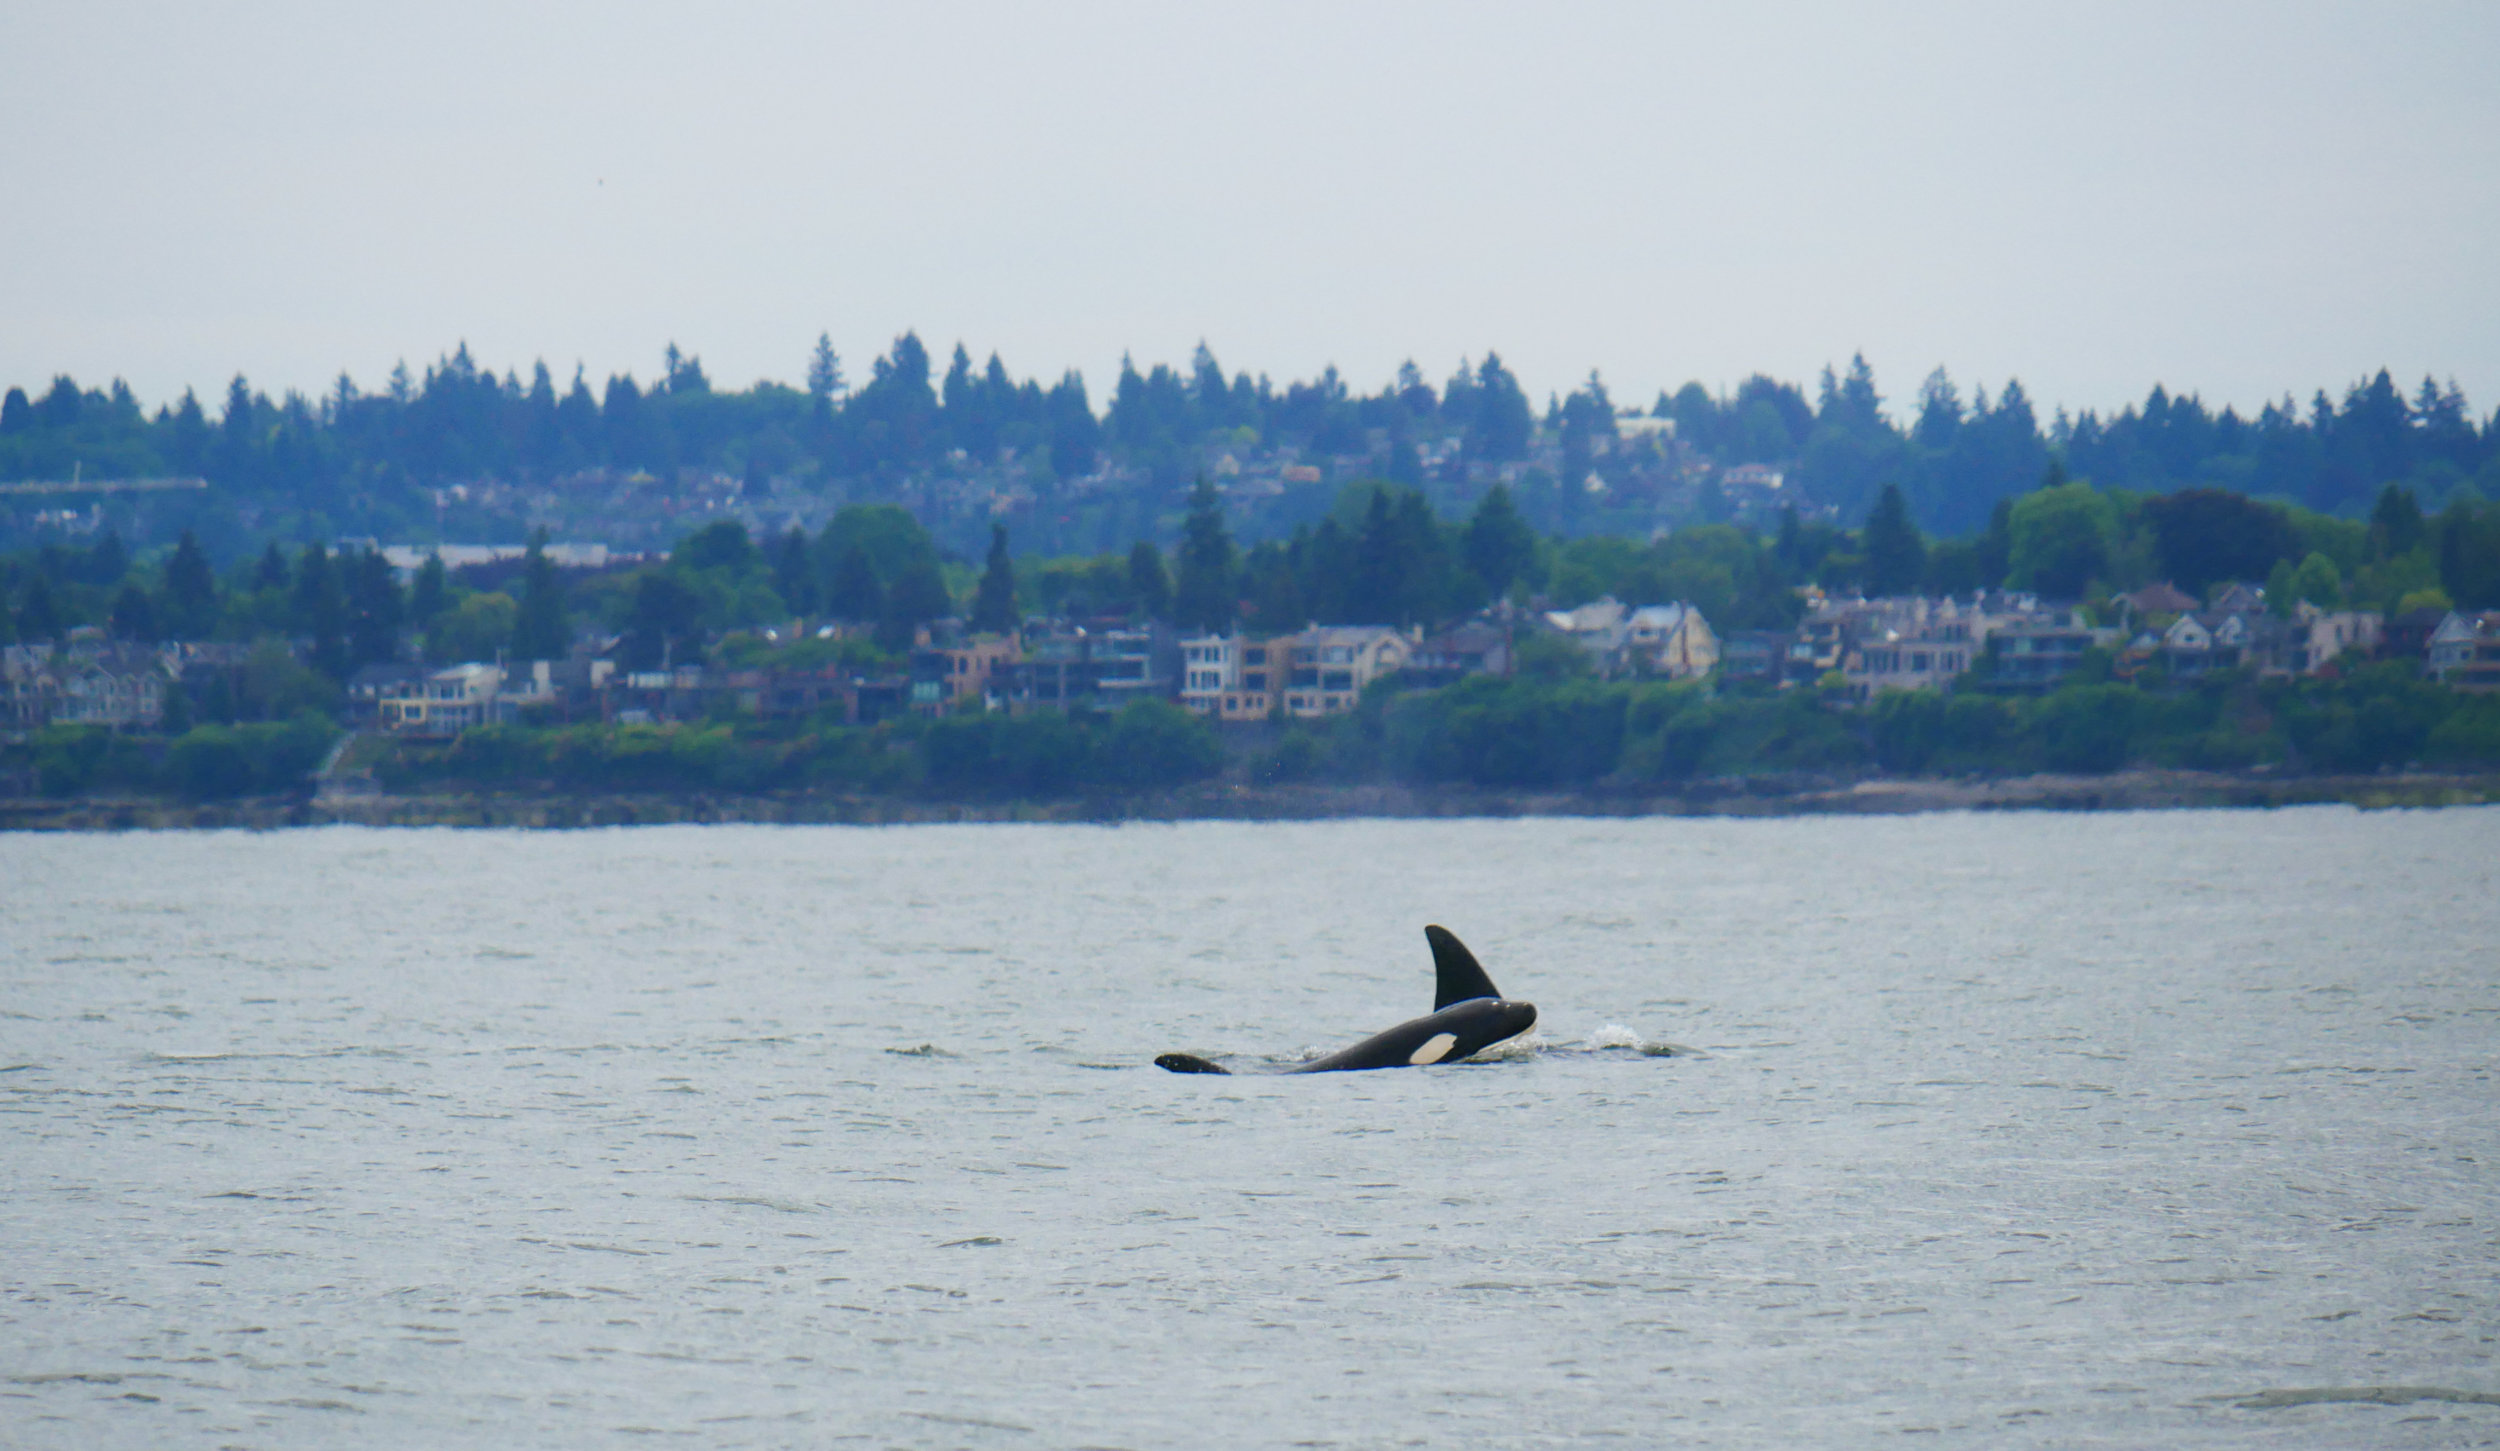 Two transient (Bigg's) orca surfacing in Vancouver waters. Photo by Alanna Vivani